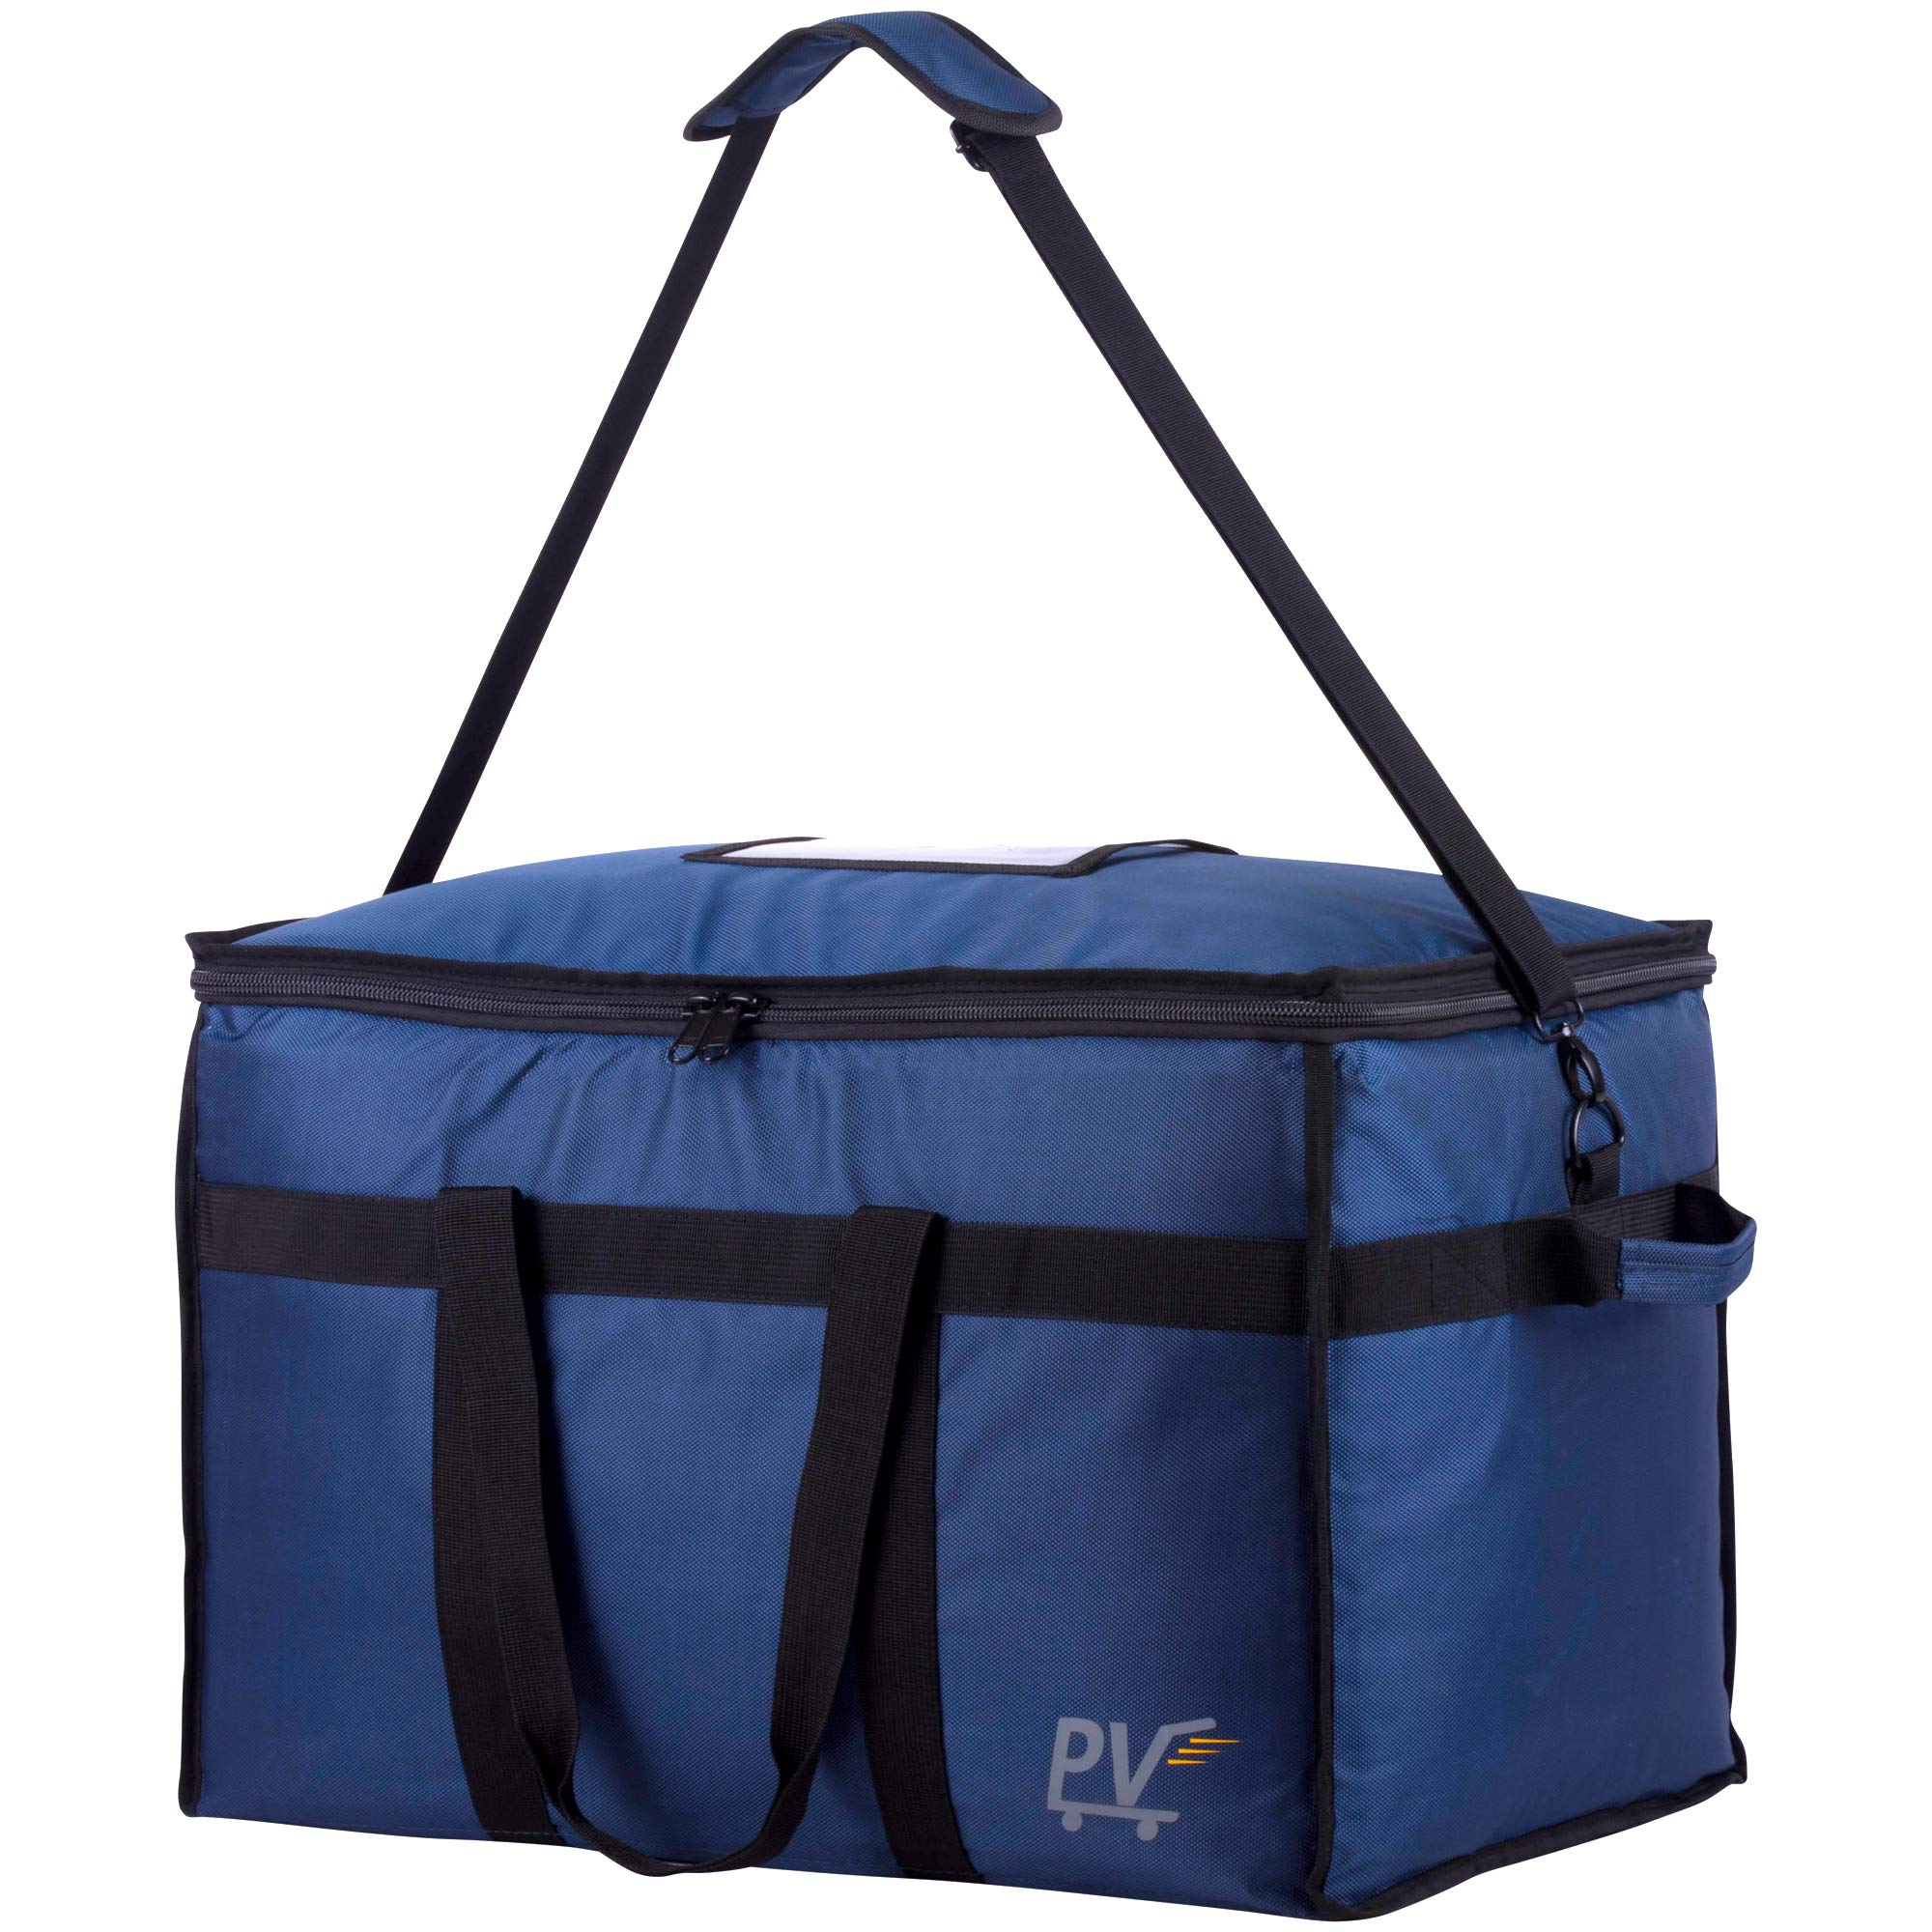 Premium Quality Insulated Food Delivery Bag with Shoulder Strap, Base Insert for Support & Divider for Catering, Grocery, or Doordash; Large Commercial Carrier Transport Bag for Hot Food Tray & Pizza by PV Merchandise